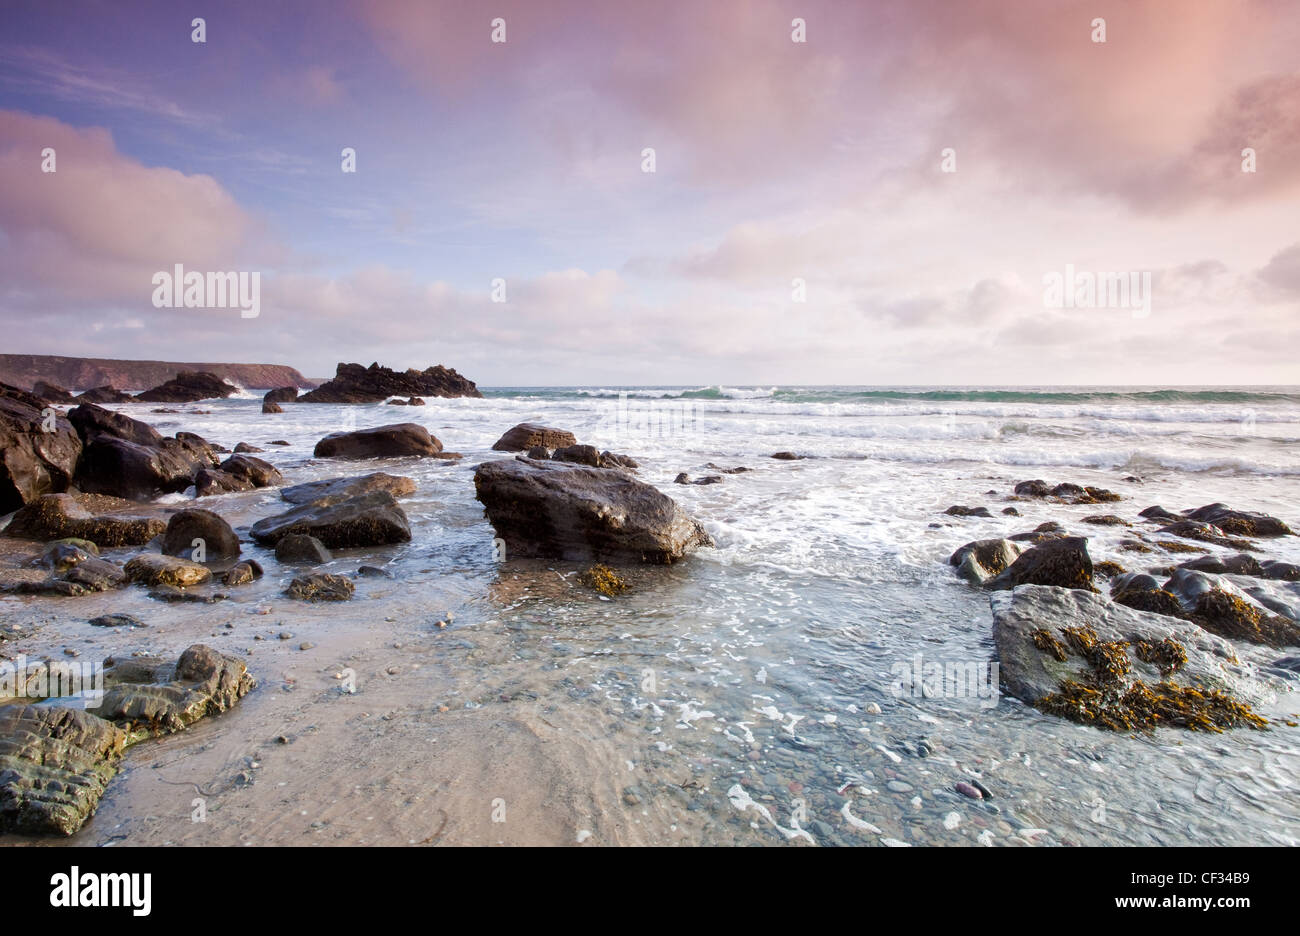 View of Irish sea, and rock strewn coastline at Marloes Sands Pembrokeshire (National Trust) Wales UK - Stock Image